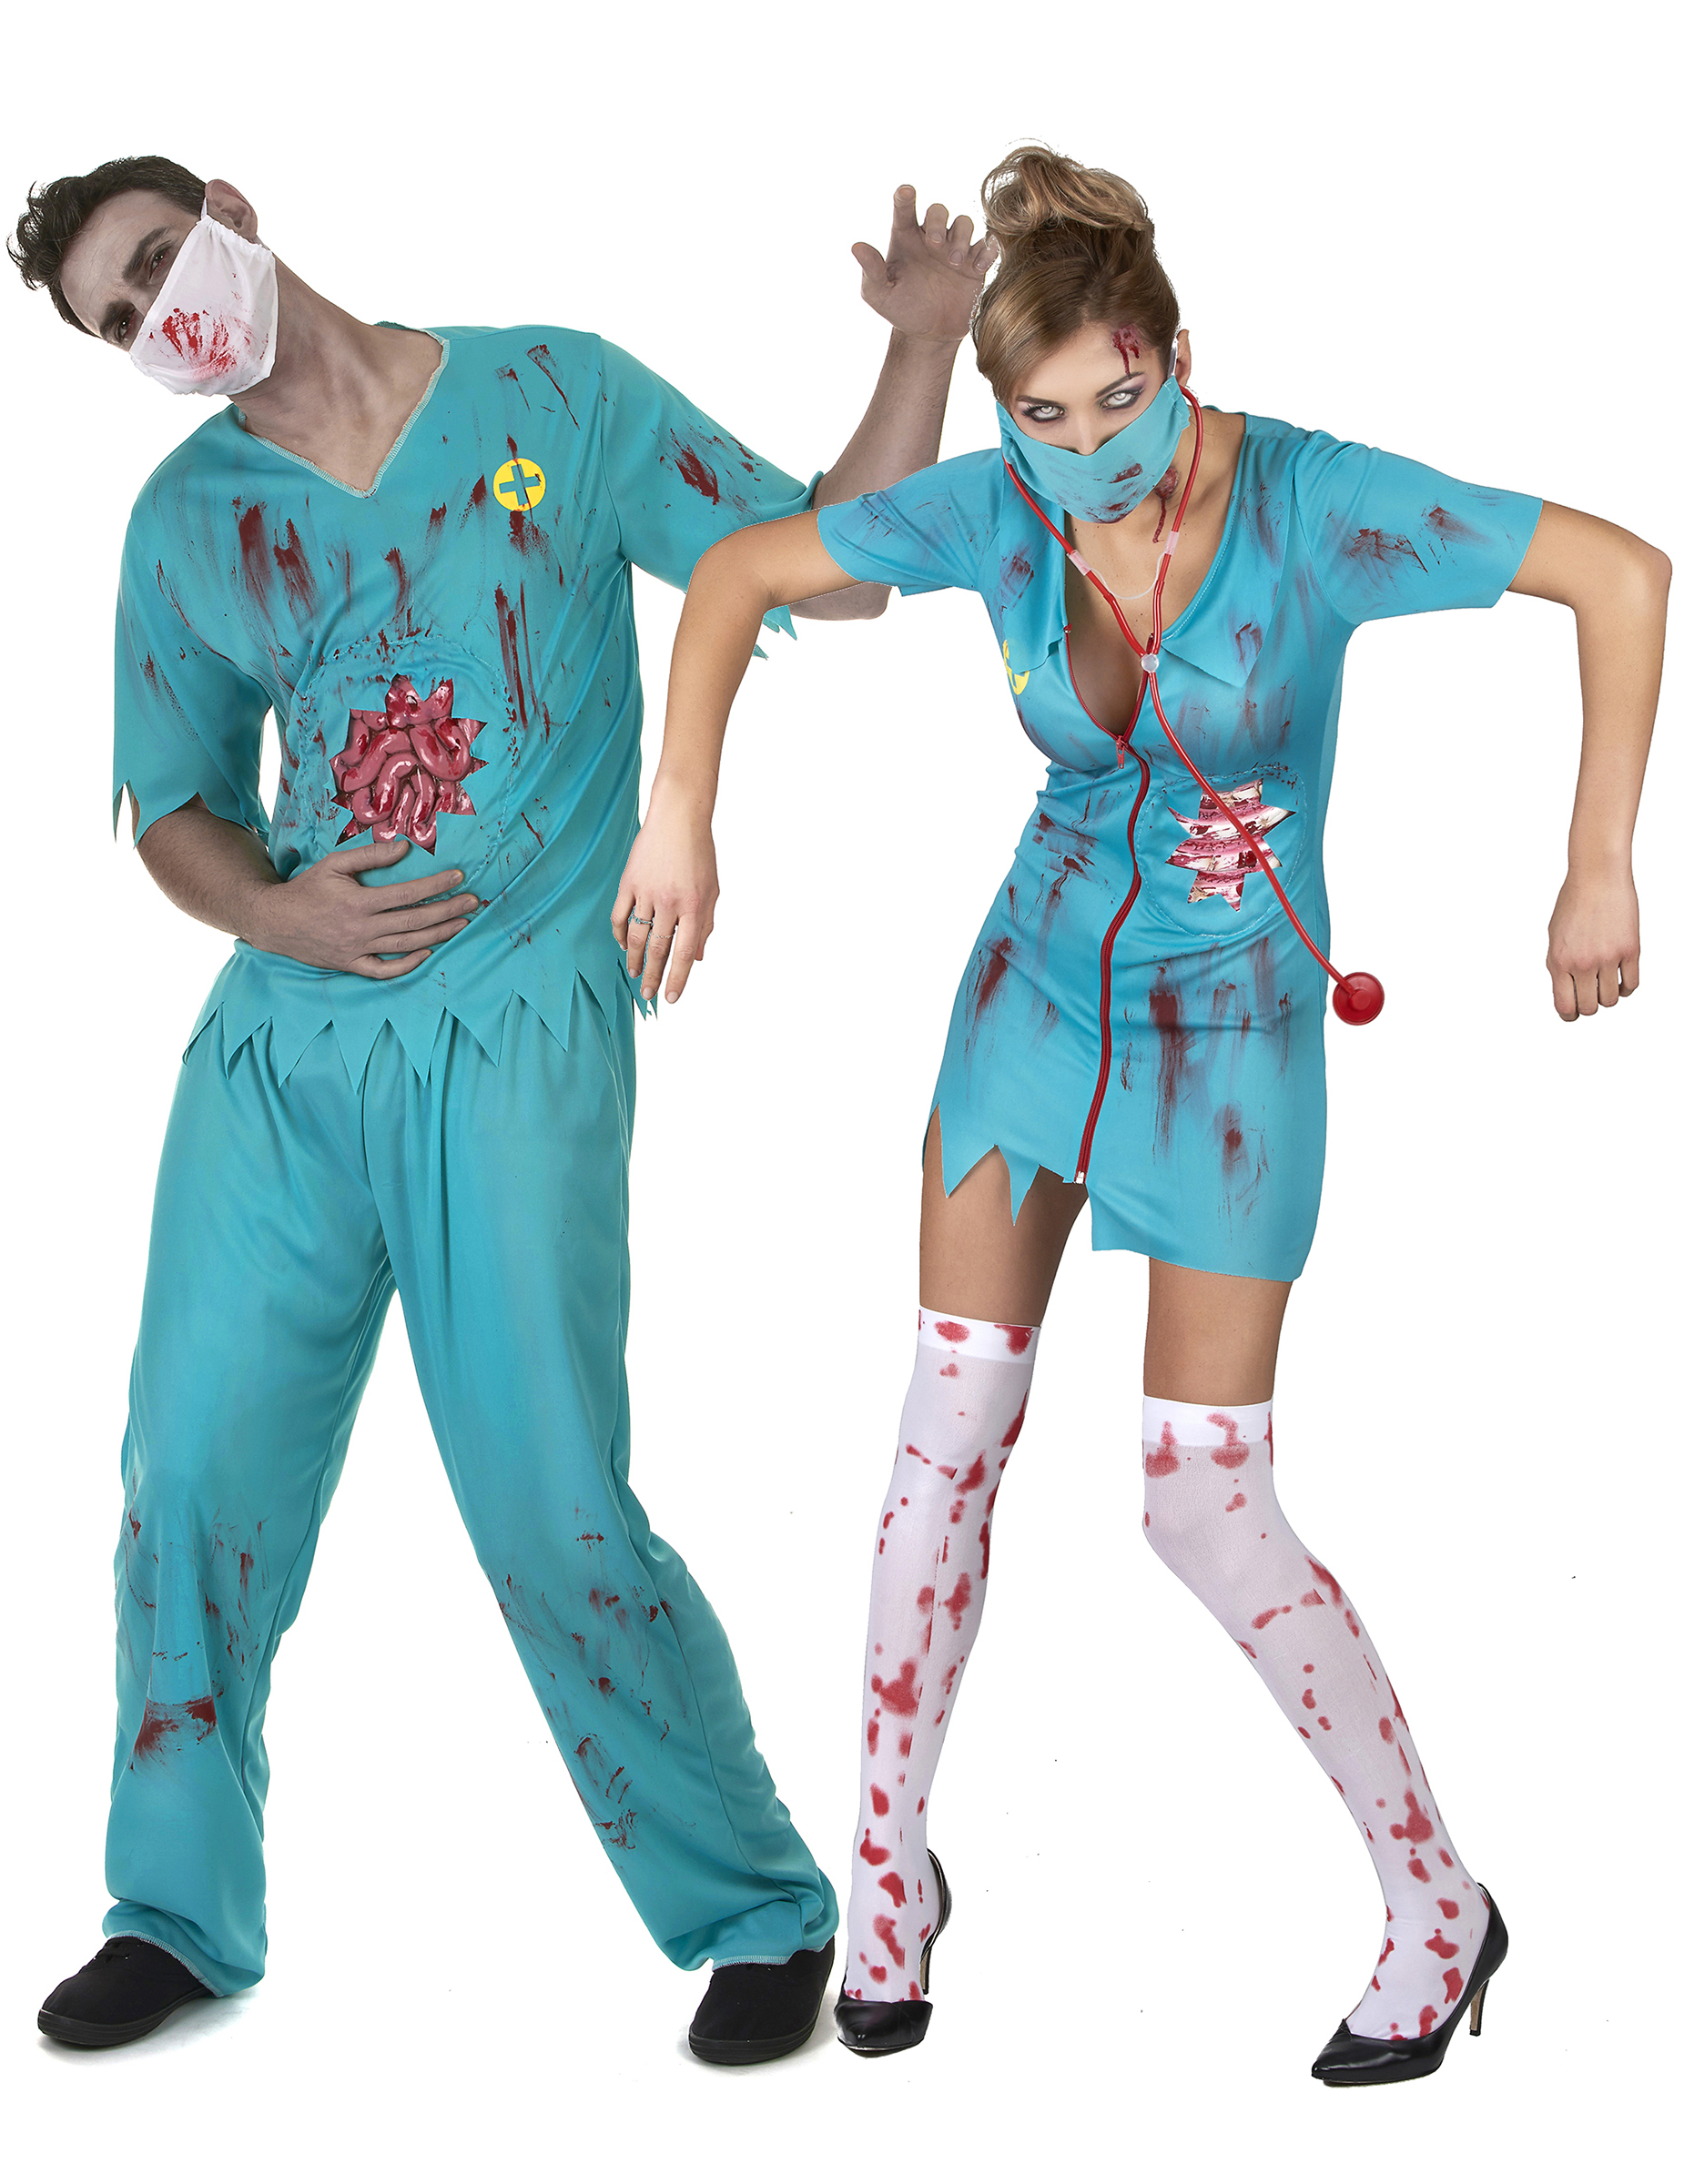 D guisement de couple m decin zombie halloween deguise toi achat de d guisements couples - Deguisement couple halloween ...